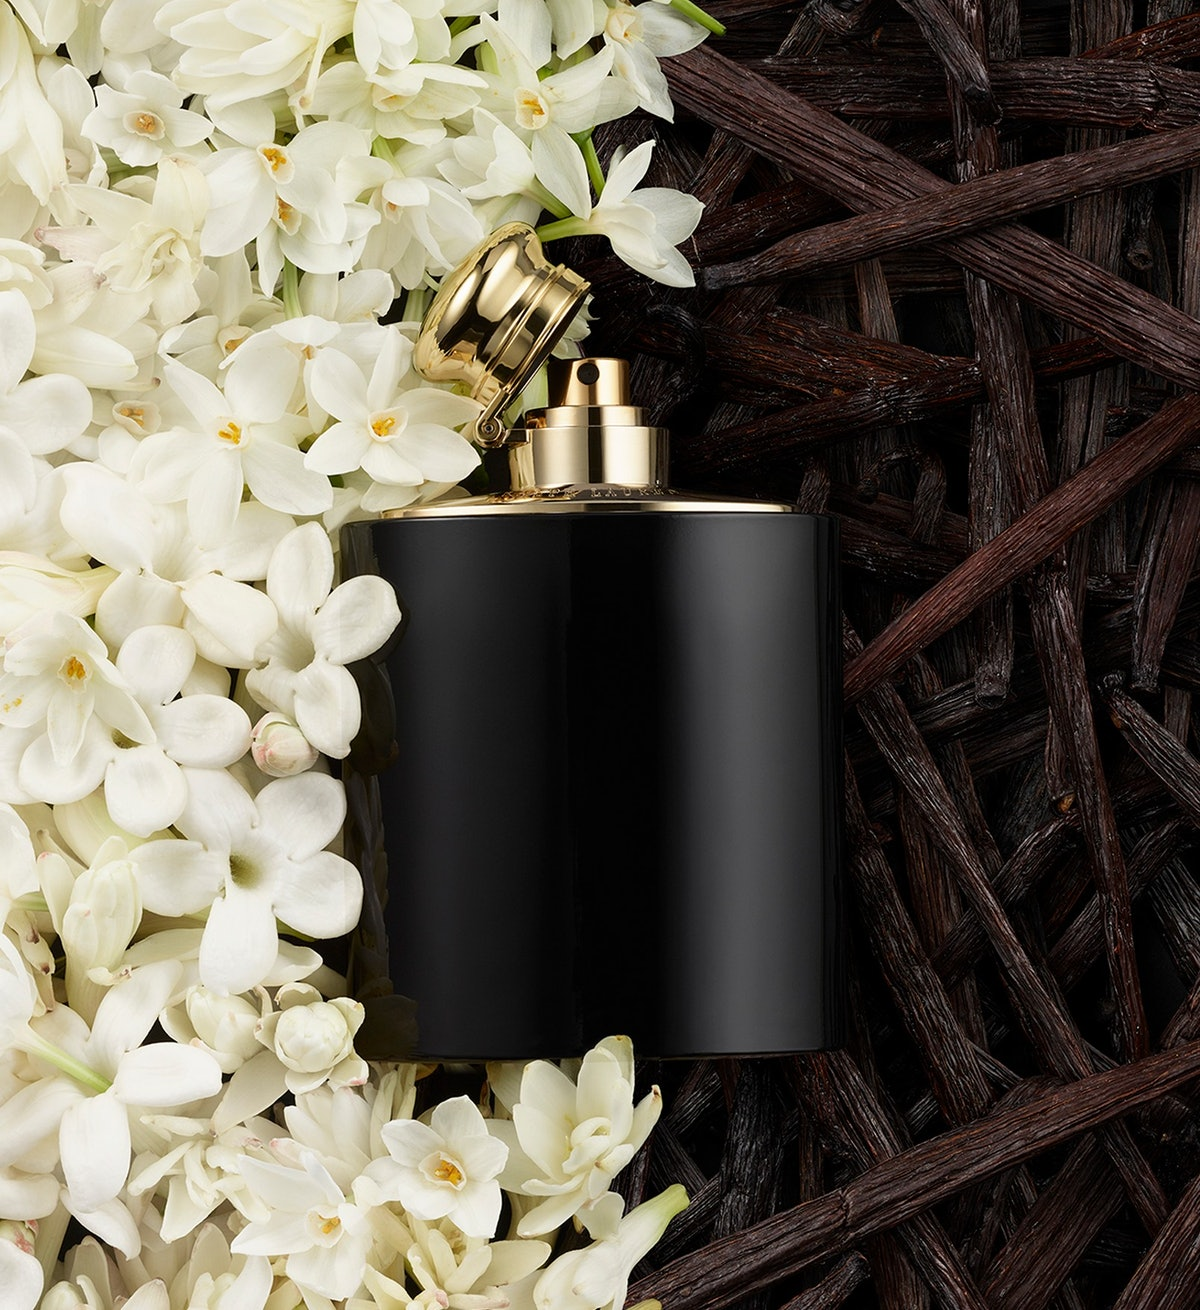 Ralph Lauren's New Woman Intense Fragrance Is The Nighttime Version Of This Classic Perfume